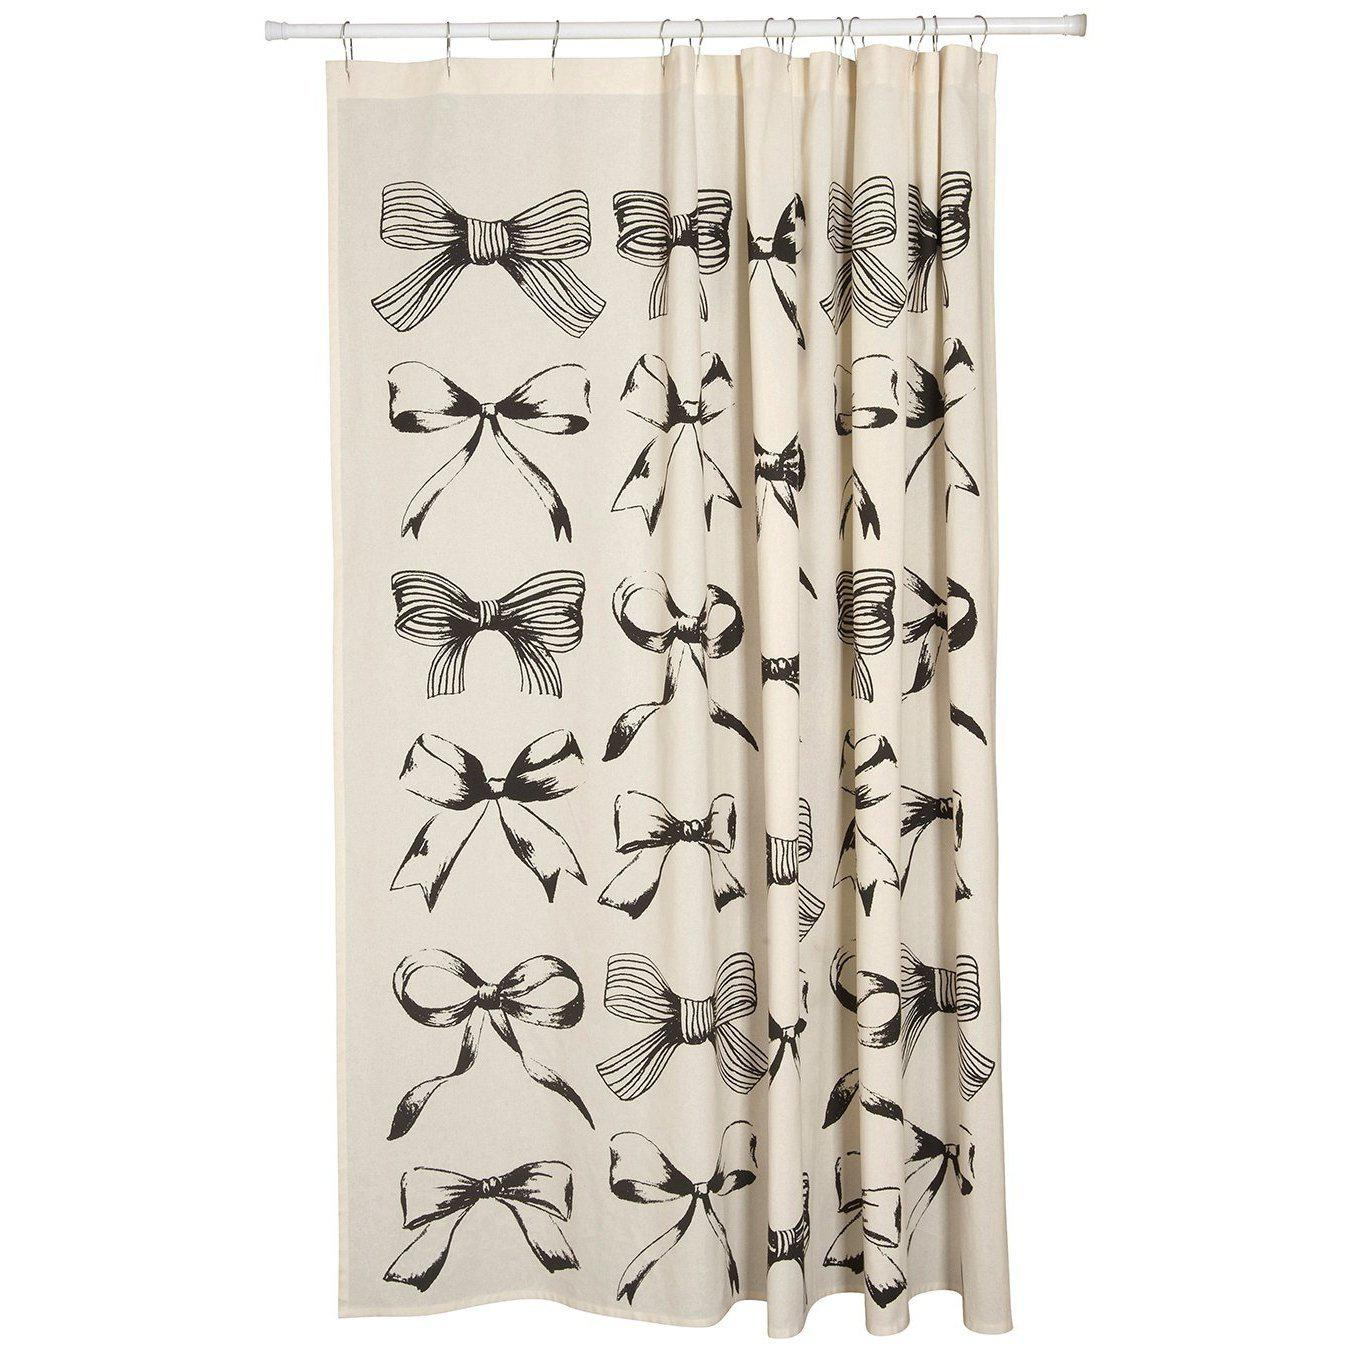 Vintage Bows Shower Curtain-Bed & Bath-A Cottage in the City